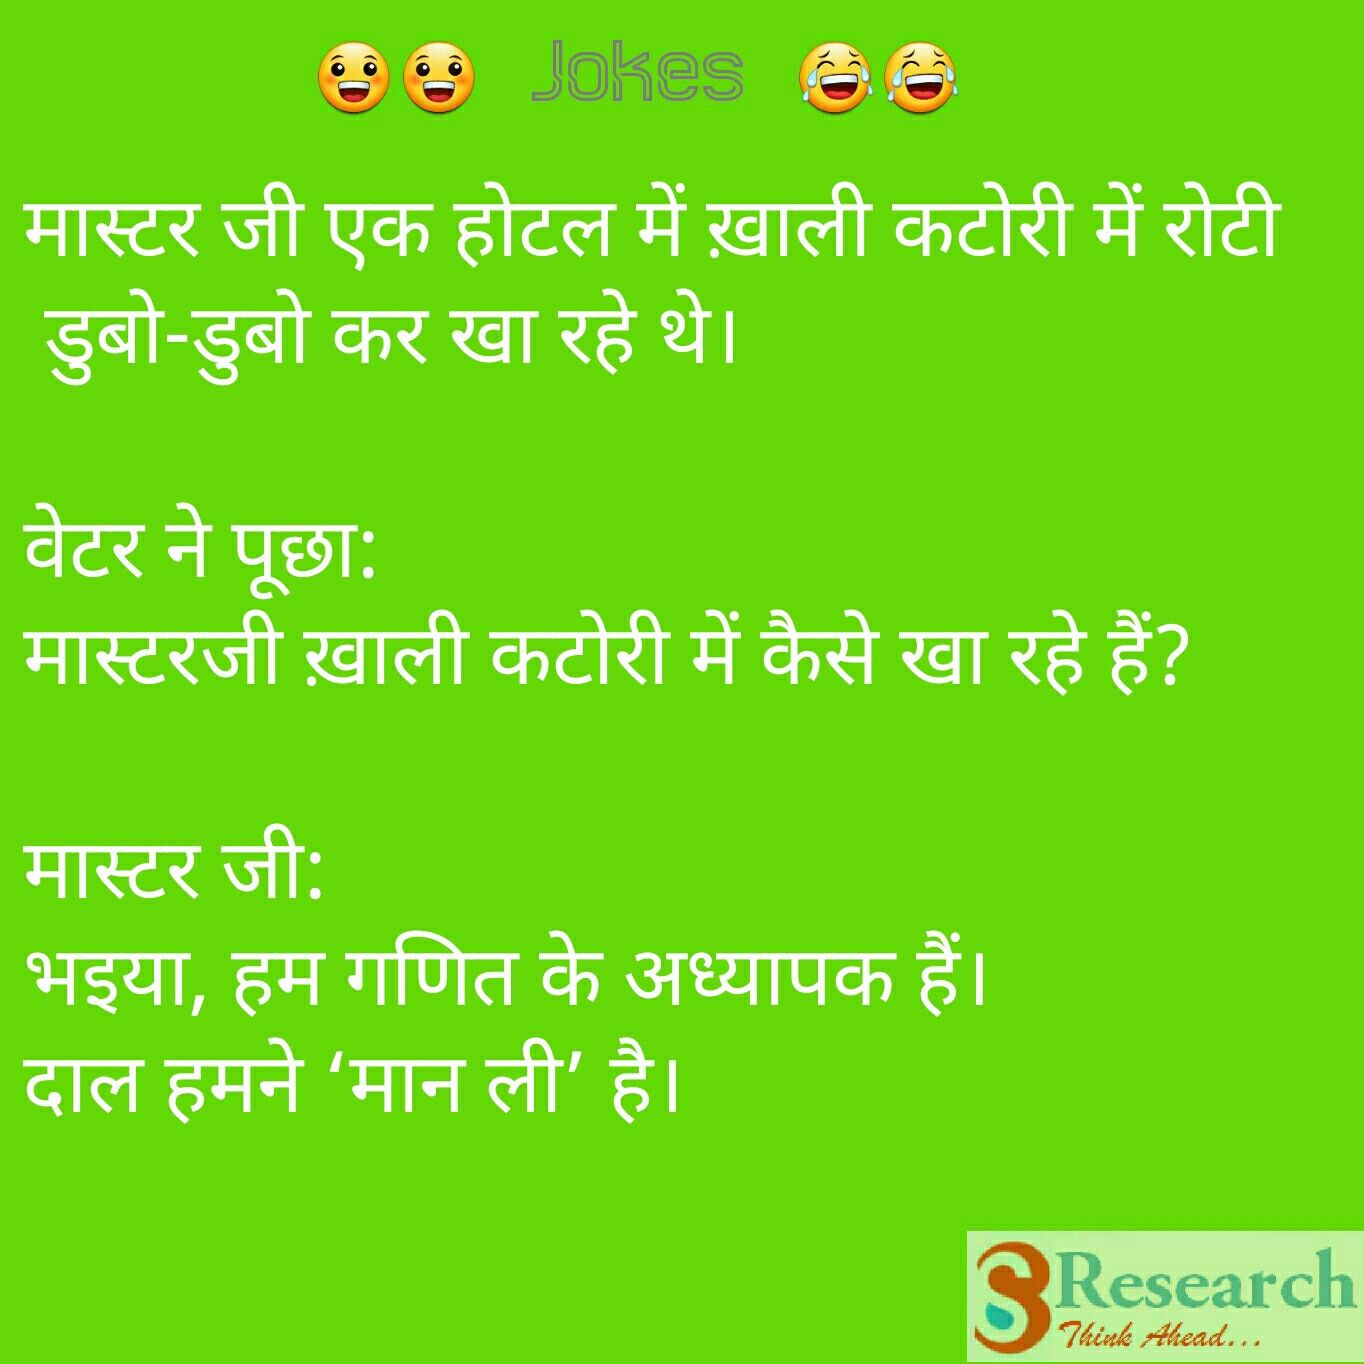 Pin by Sadhna Goel on Riddles & jokes (With images